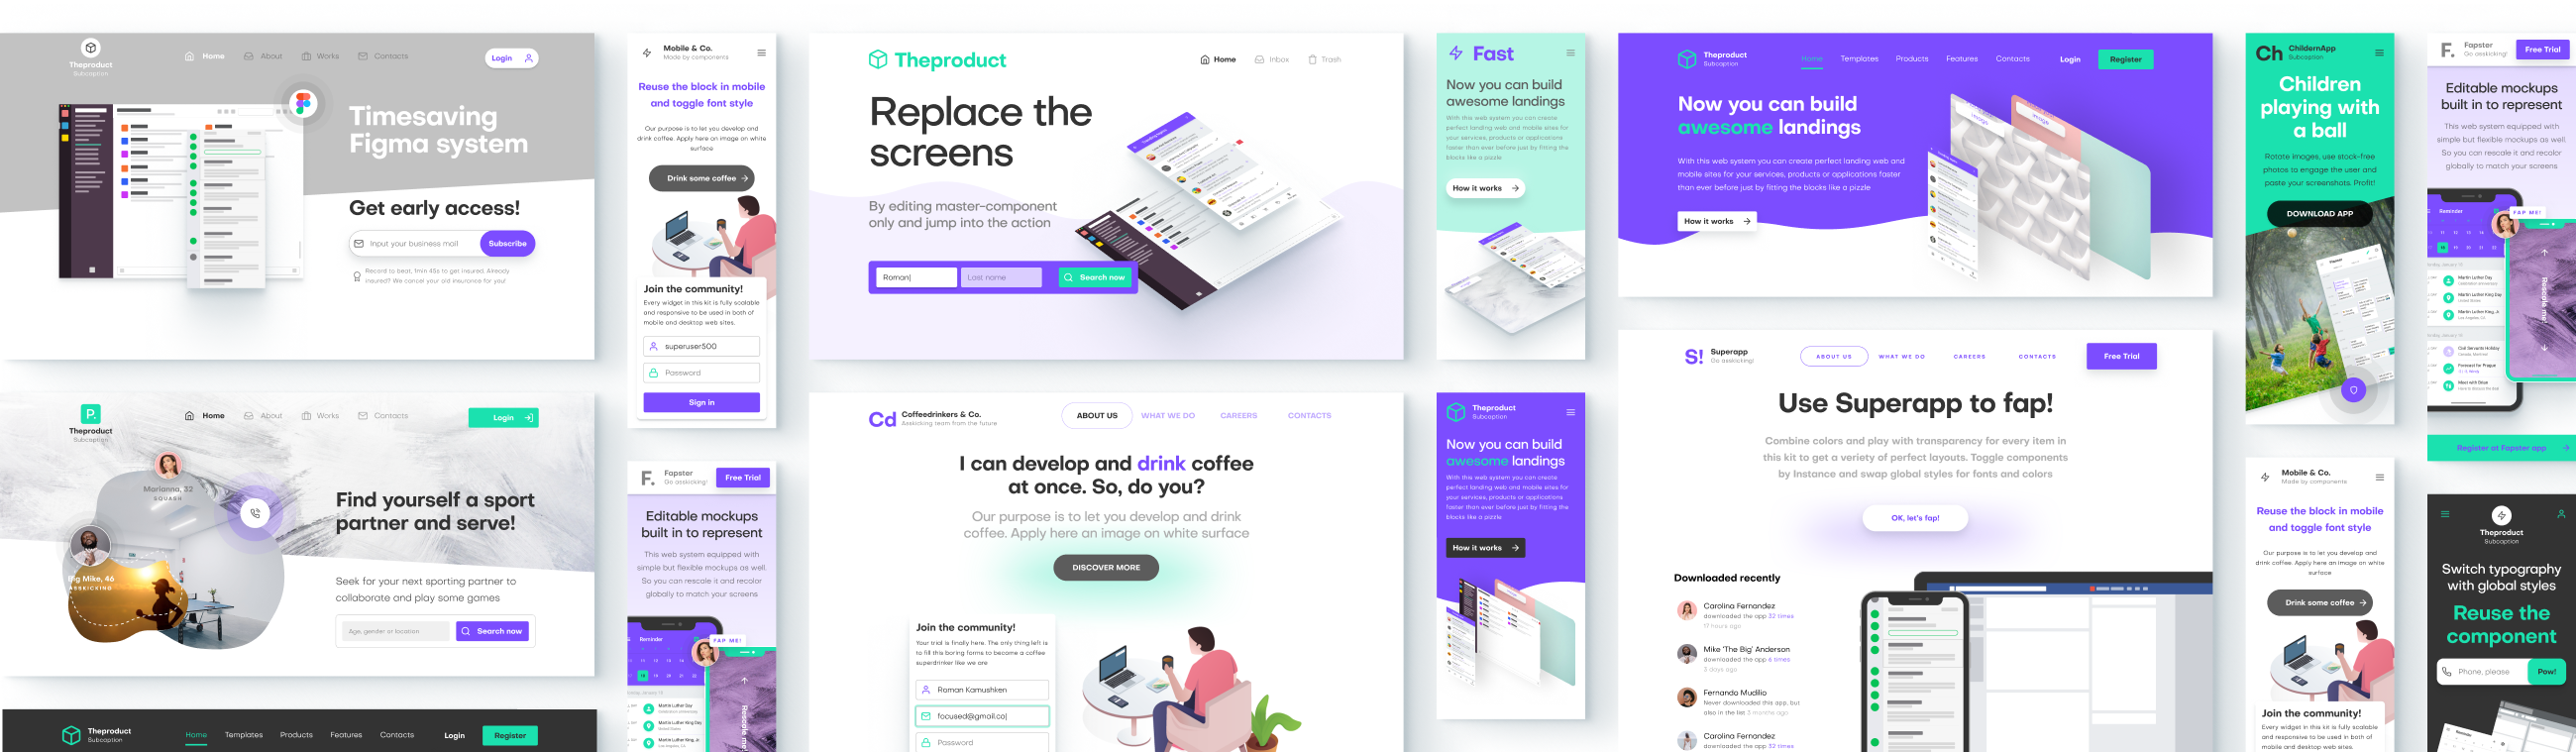 Figma Landing Pages Builder Web System Based On Components By Roman Kamushken Medium